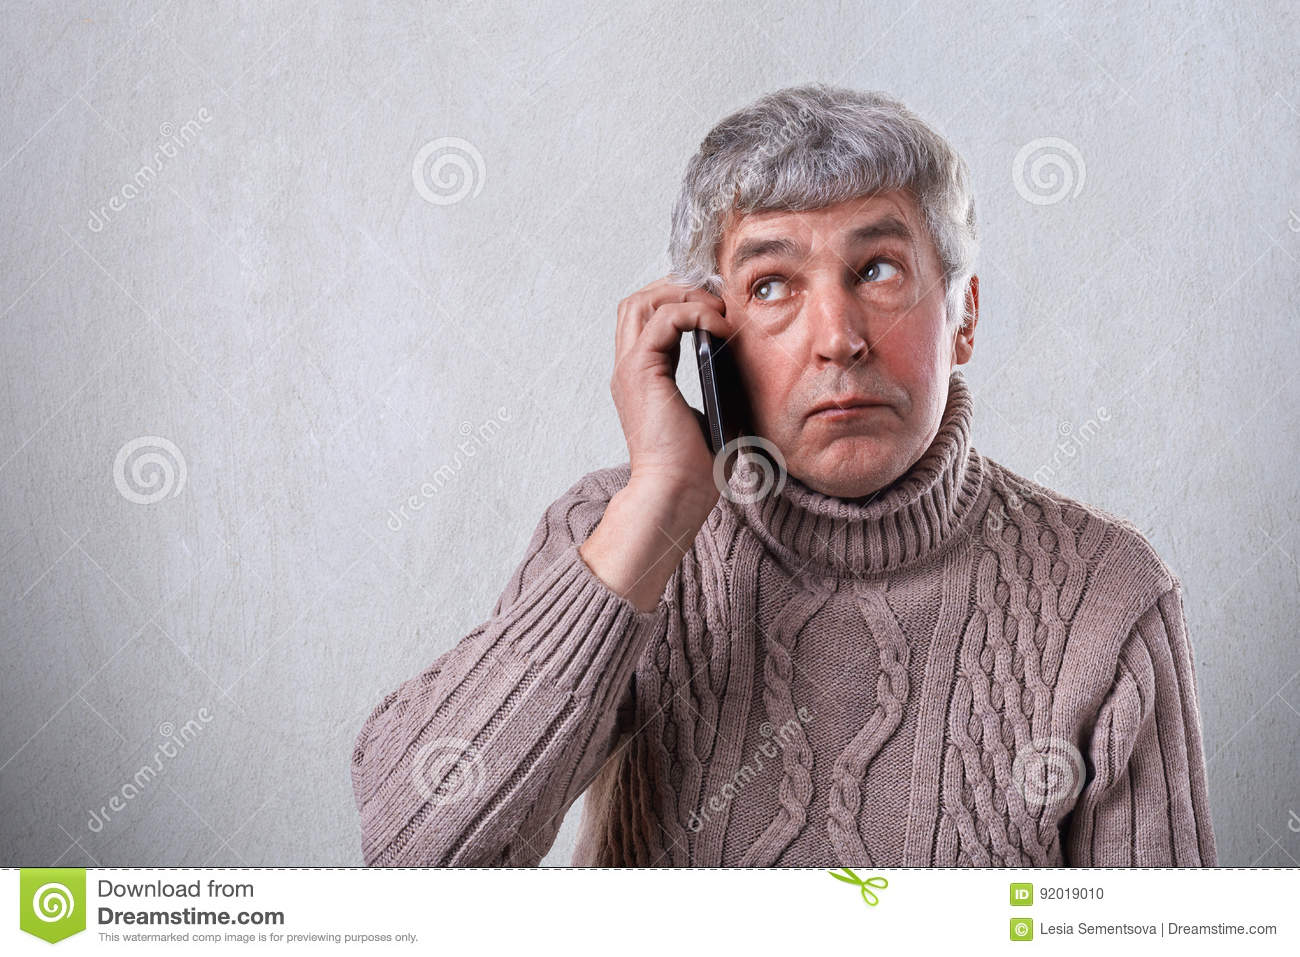 A horizontal portrait of mature man with gray hair and wrinkles dressed in warm sweater holding mobile phone on his ear looking as